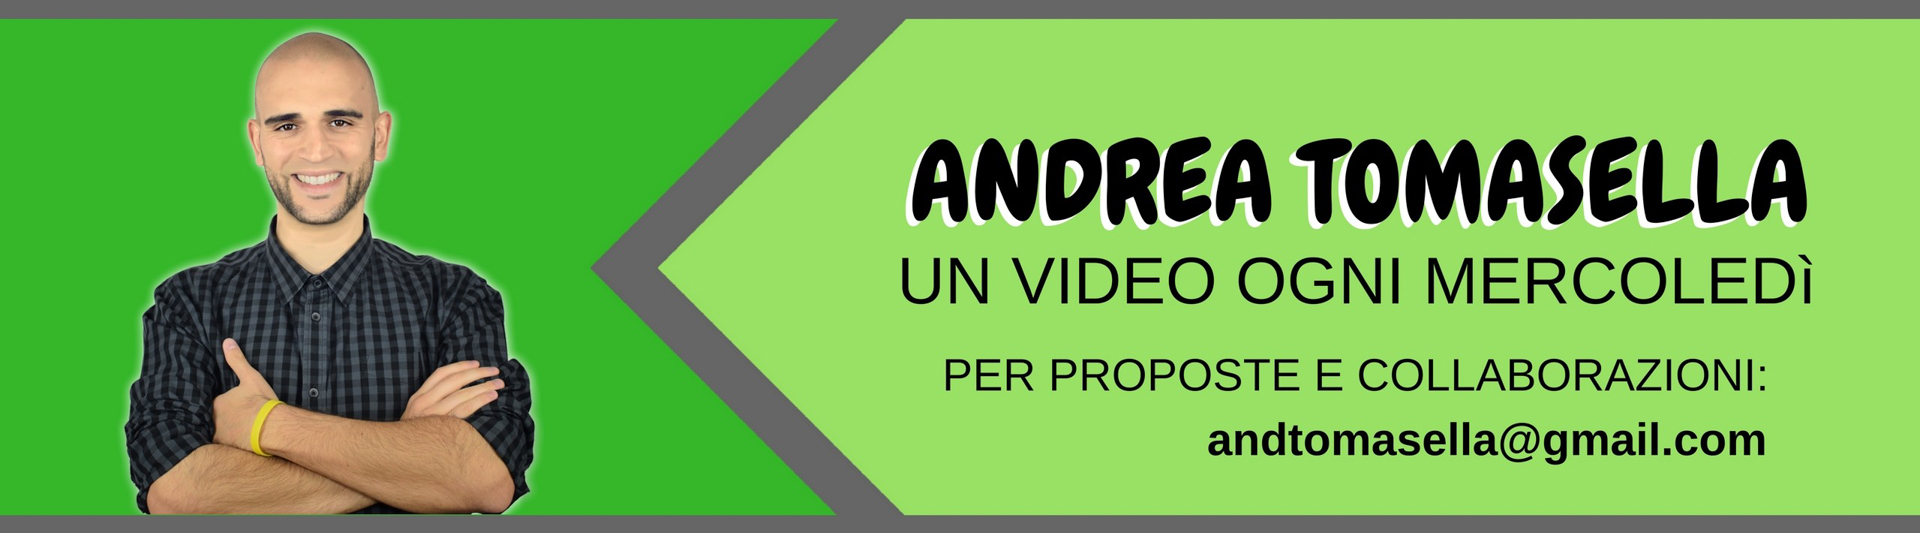 grafica canale youtube